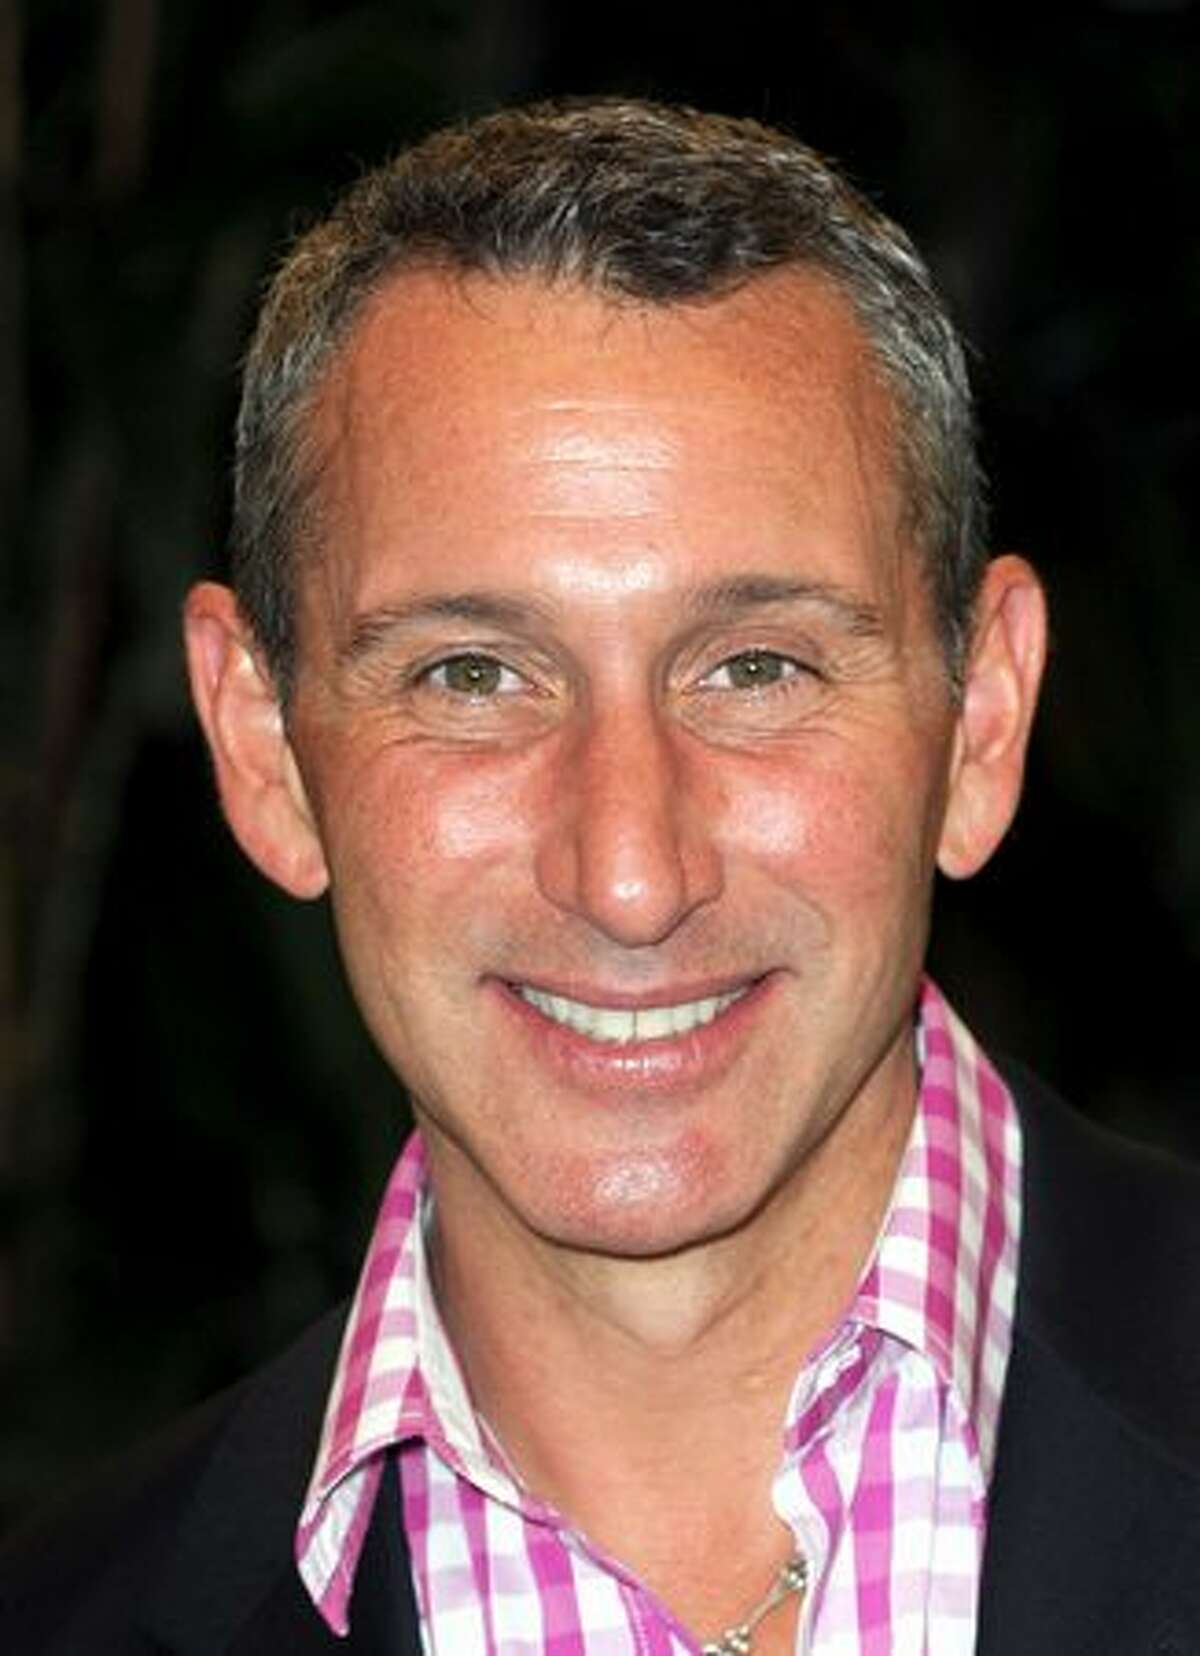 Director Adam Shankman arrives at the Hollywood Foreign Press Association's Installation Luncheon held at The Four Seasons Hotel in Beverly Hills, California.